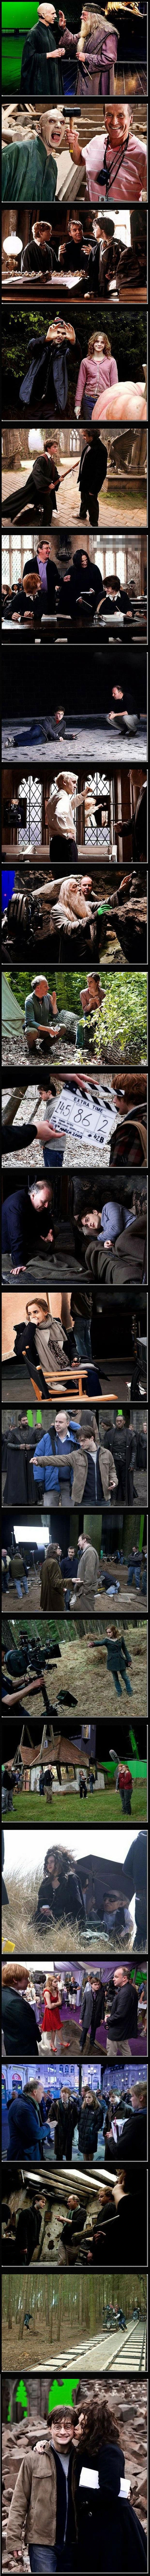 Behind the scenes of Harry Potter movie1 Behind the scenes of Harry Potter movie (23 Pictures)